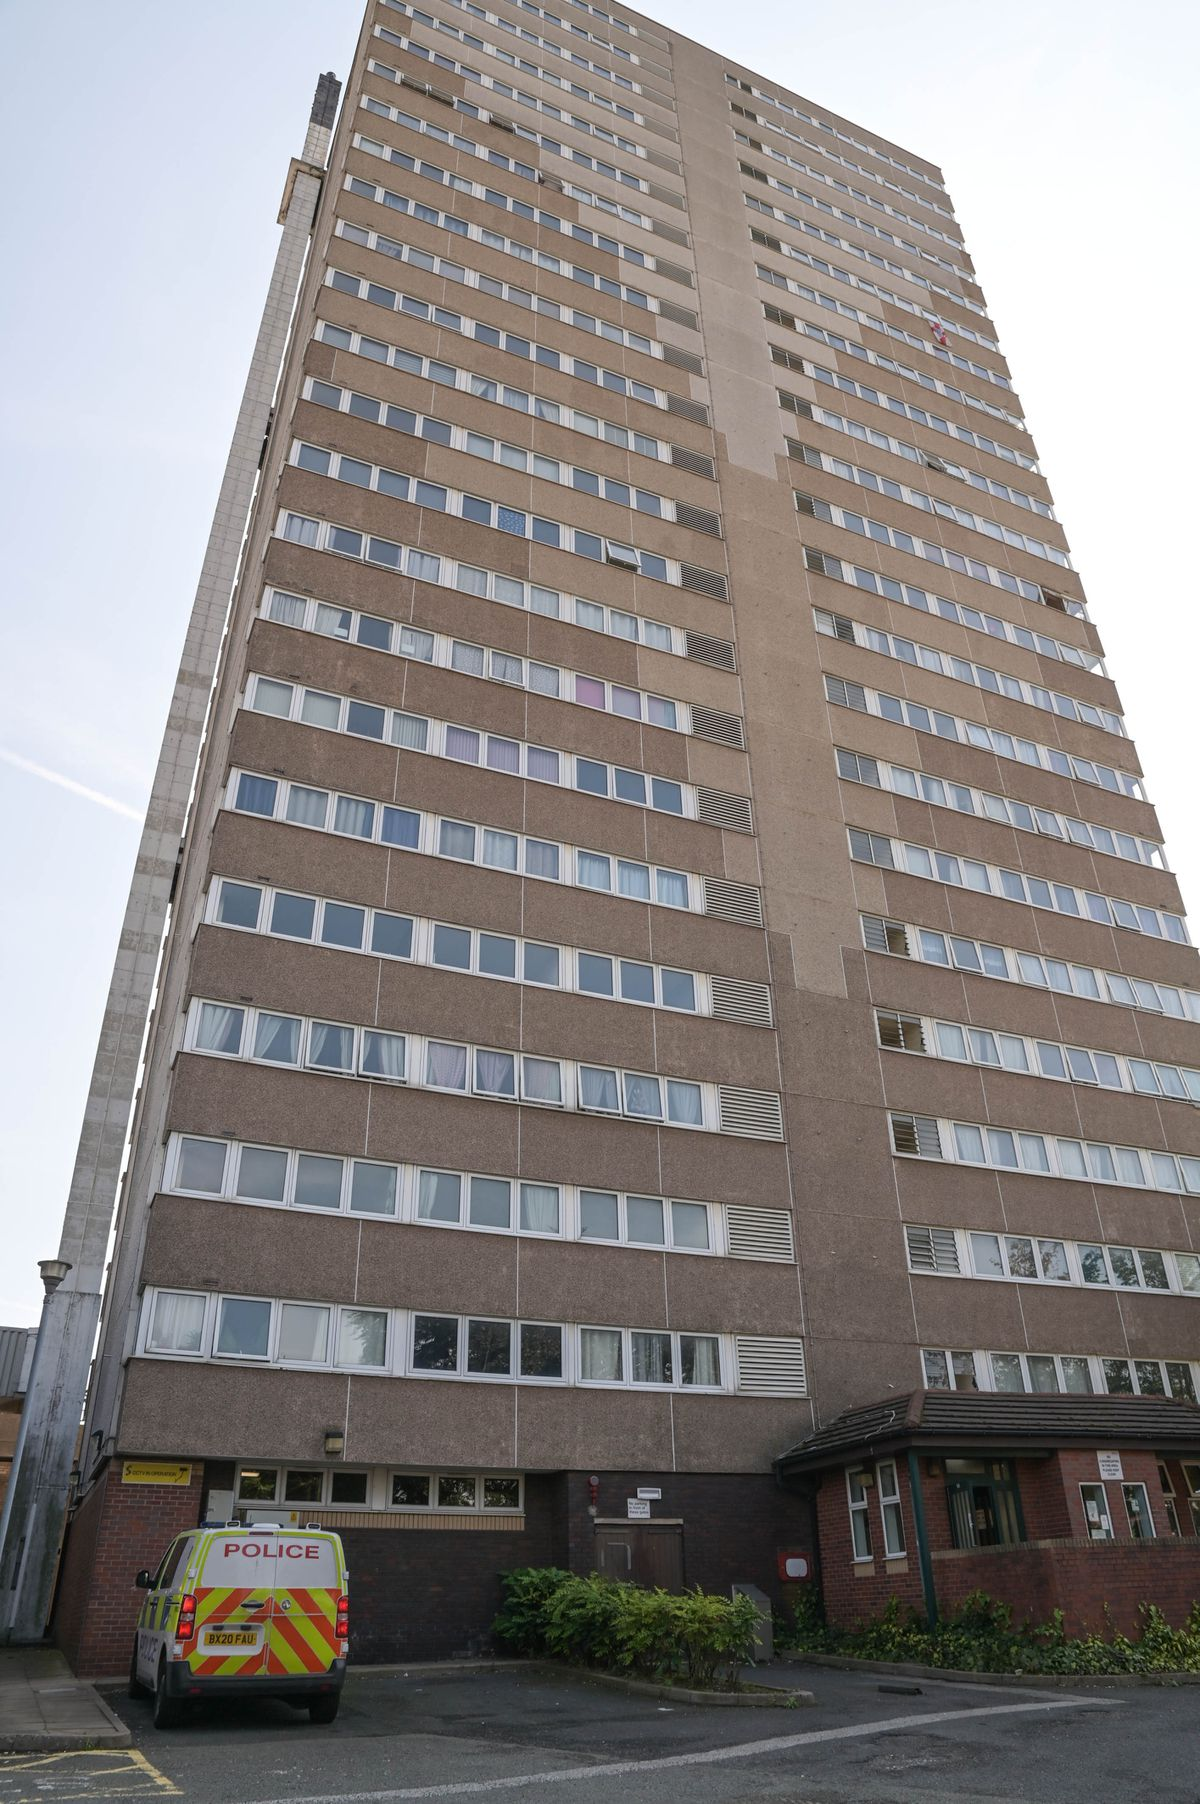 Police have also been searching the high-rise flats in Heath Town where Ms Jerrare lived. Photo: SnapperSK